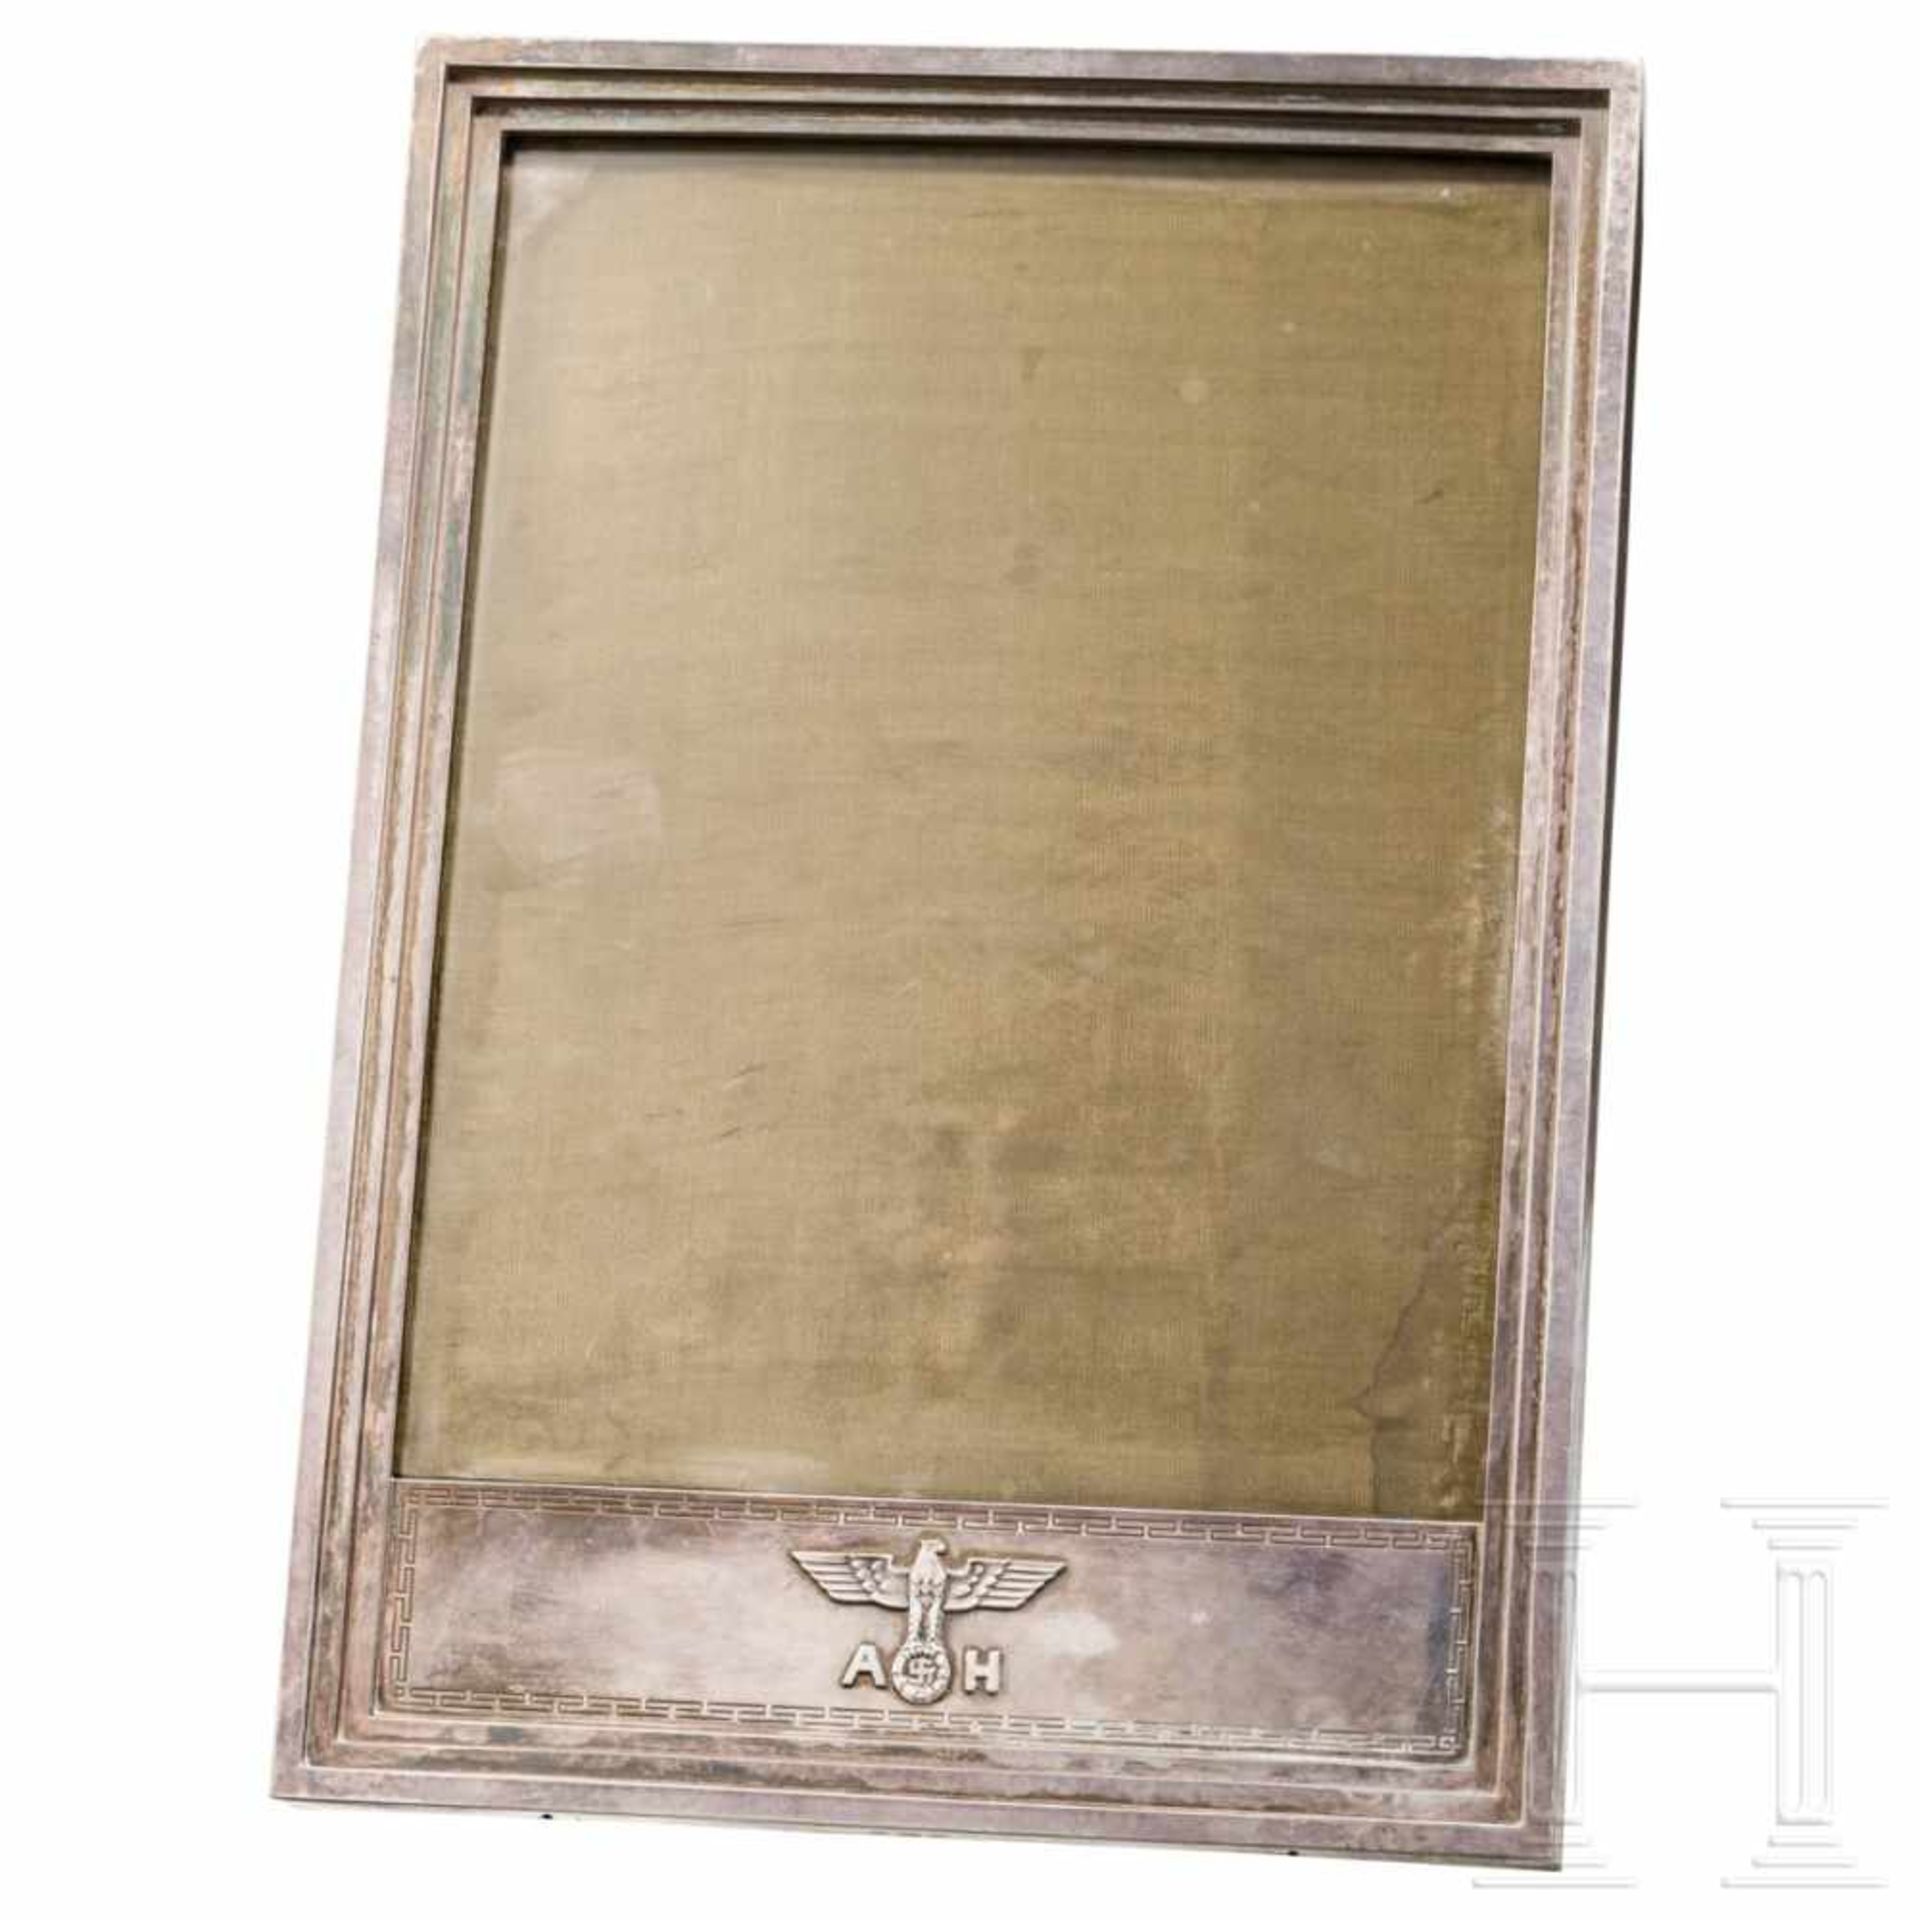 Los 6049 - Adolf Hitler – a silver presentation frameA hand-hammered silver frame with a three-tiered profile